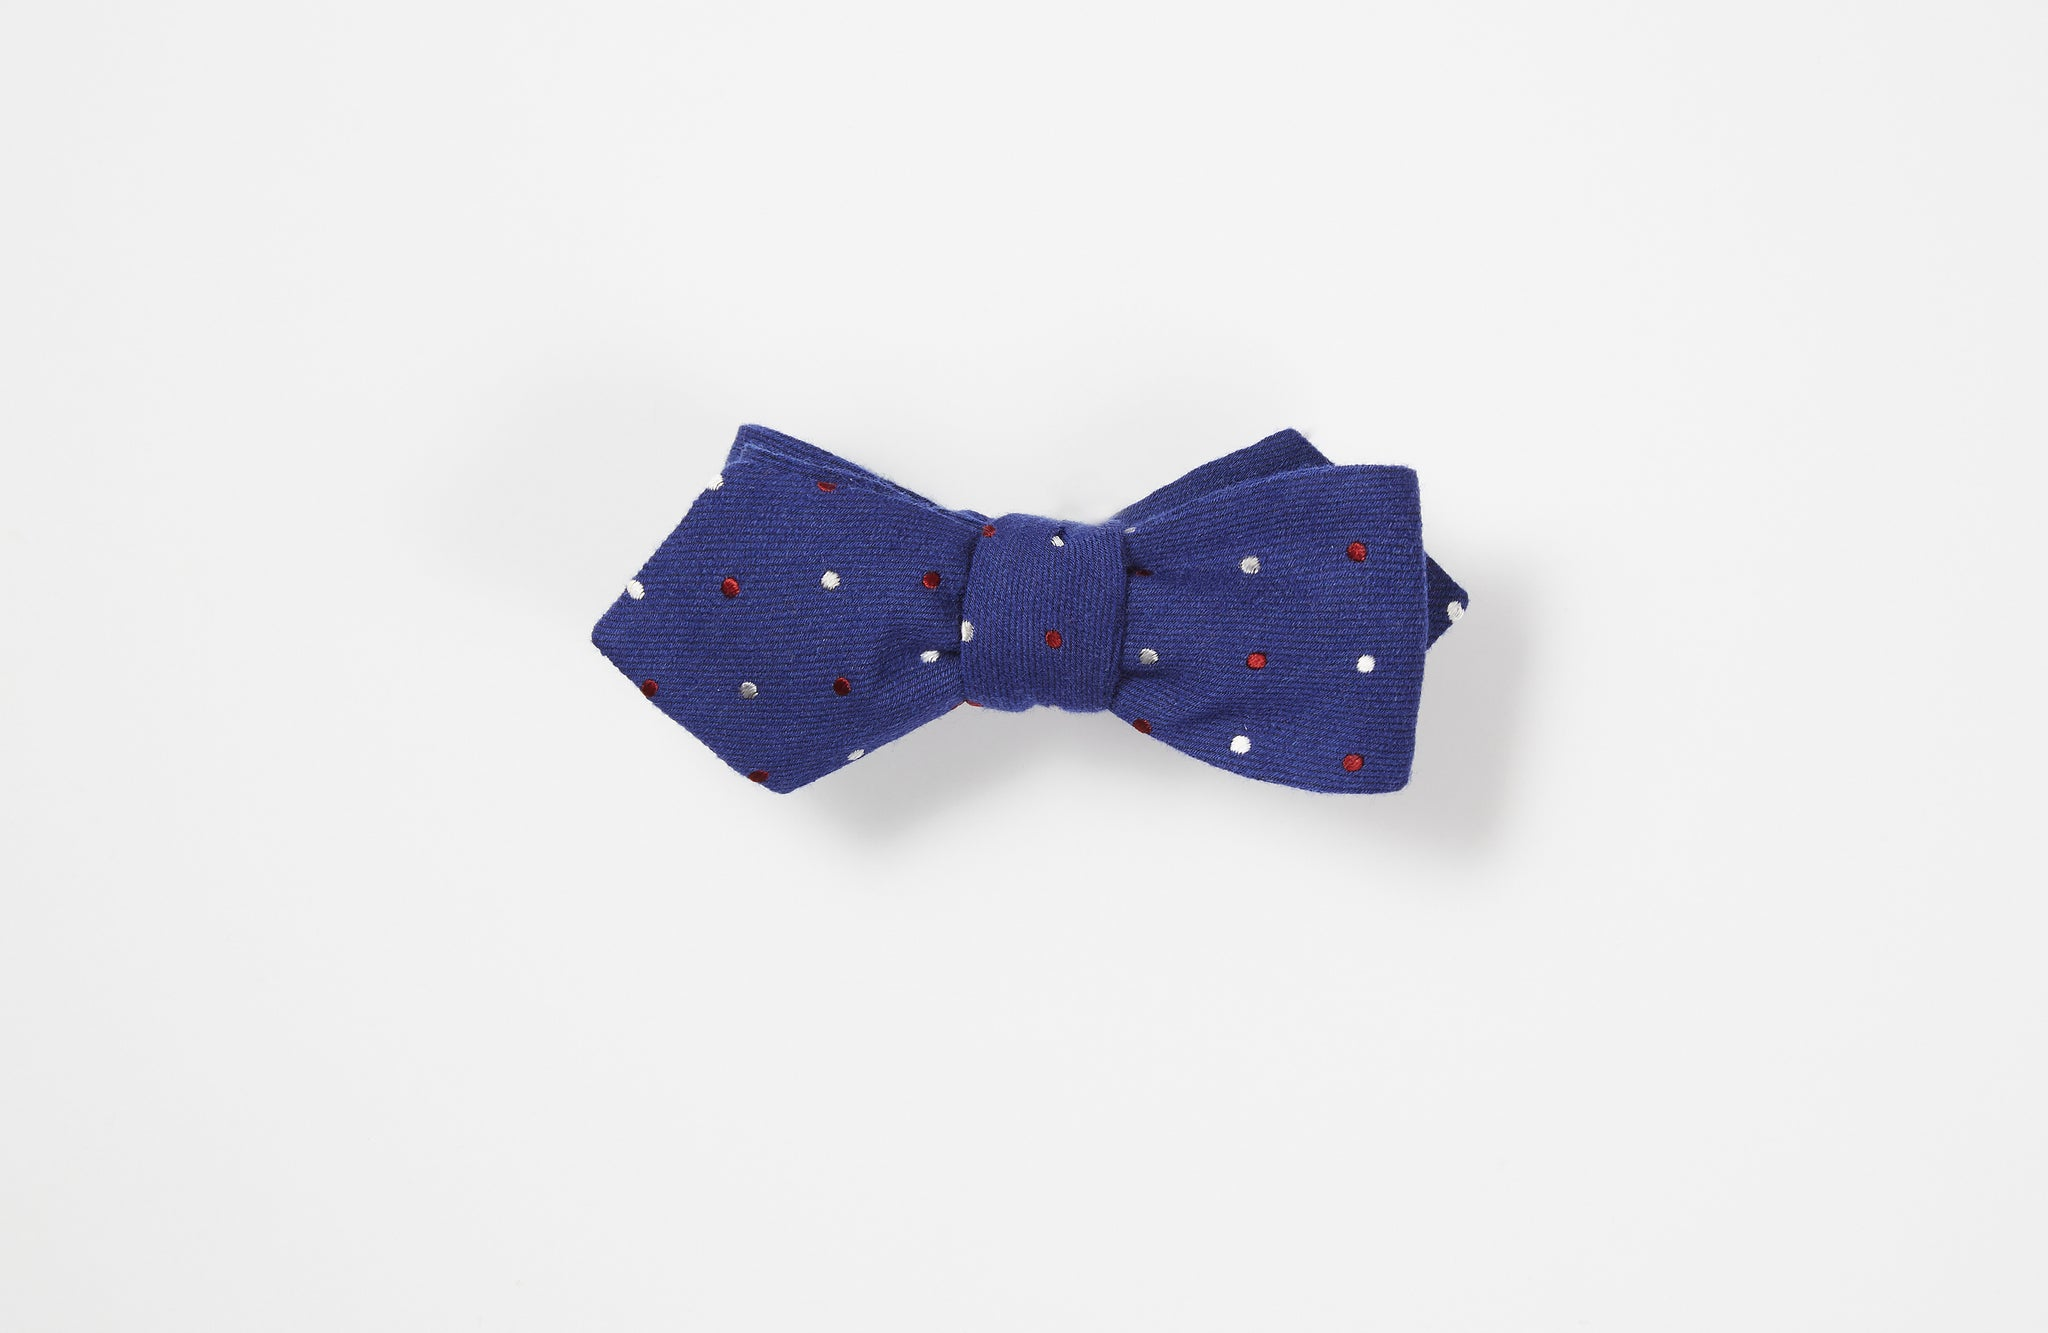 The Welles Bow Tie